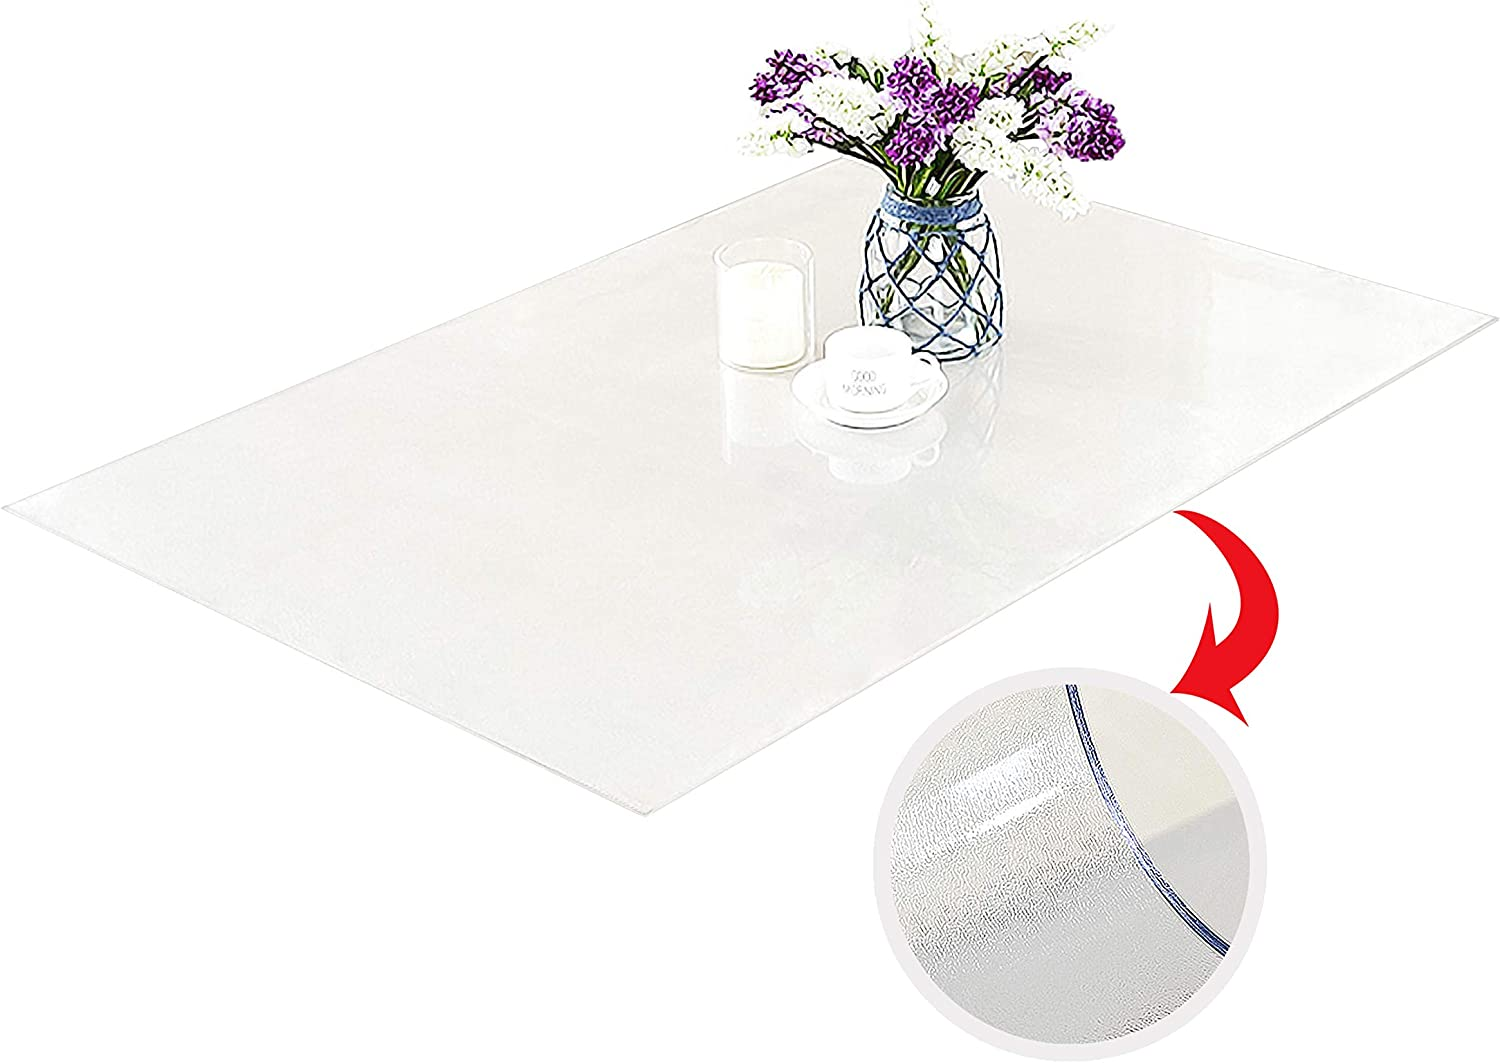 Plastic Table Cloth For Kitchen Wooden Table Table Pad For Dining Room Table 80x40 Custom 80 X 40 Inch Clear Table Cover Clear Table Cloth Cover Protector Table Pads Home Kitchen